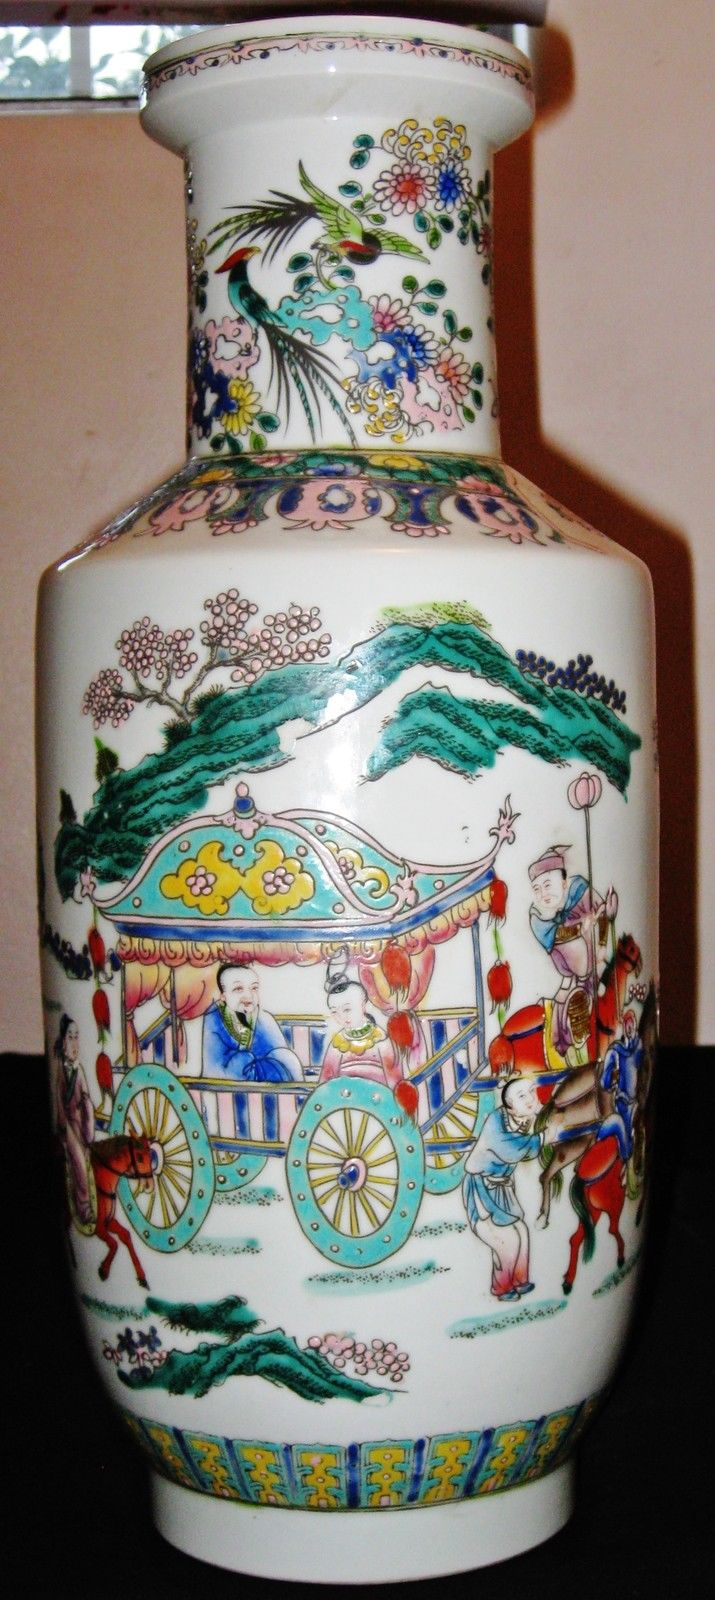 Antique Chinese Figures Hand Painting Porcelain Vase,18th C., KangXi Mark.